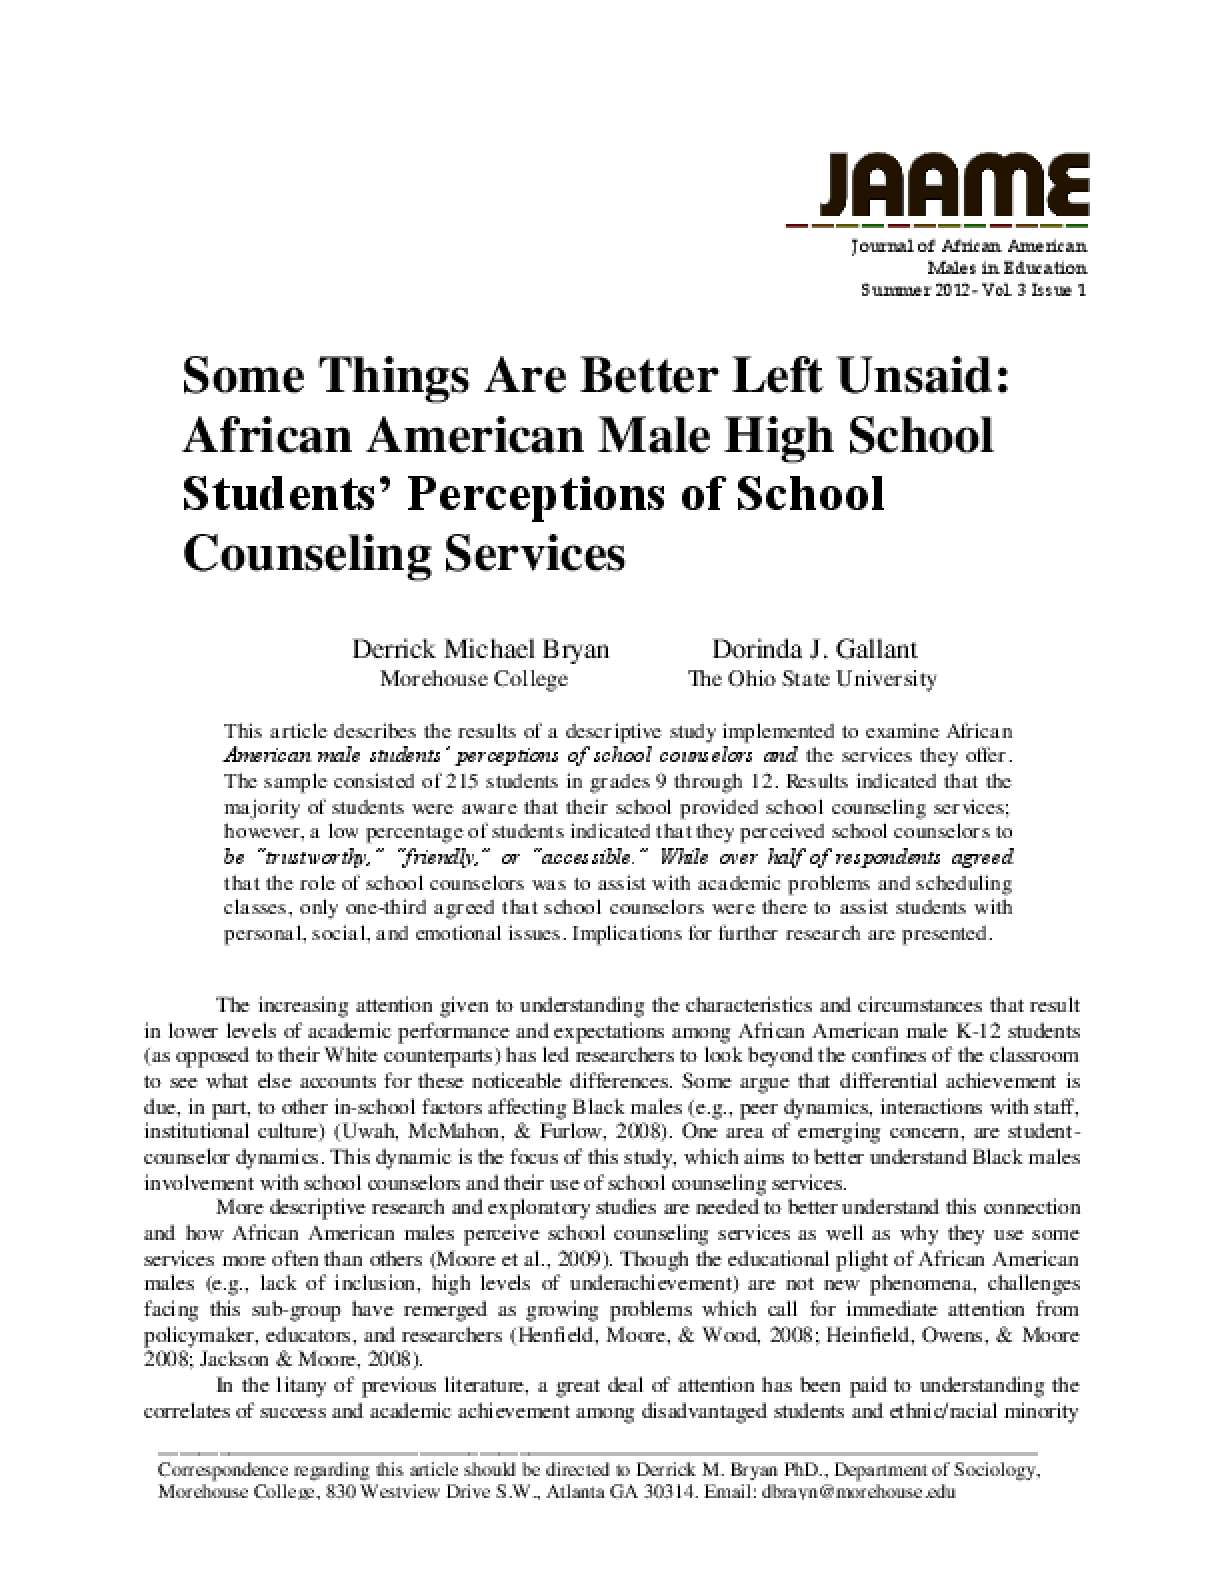 Some Things Are Better Left Unsaid: African American Male High School Students' Perceptions of School Counseling Services